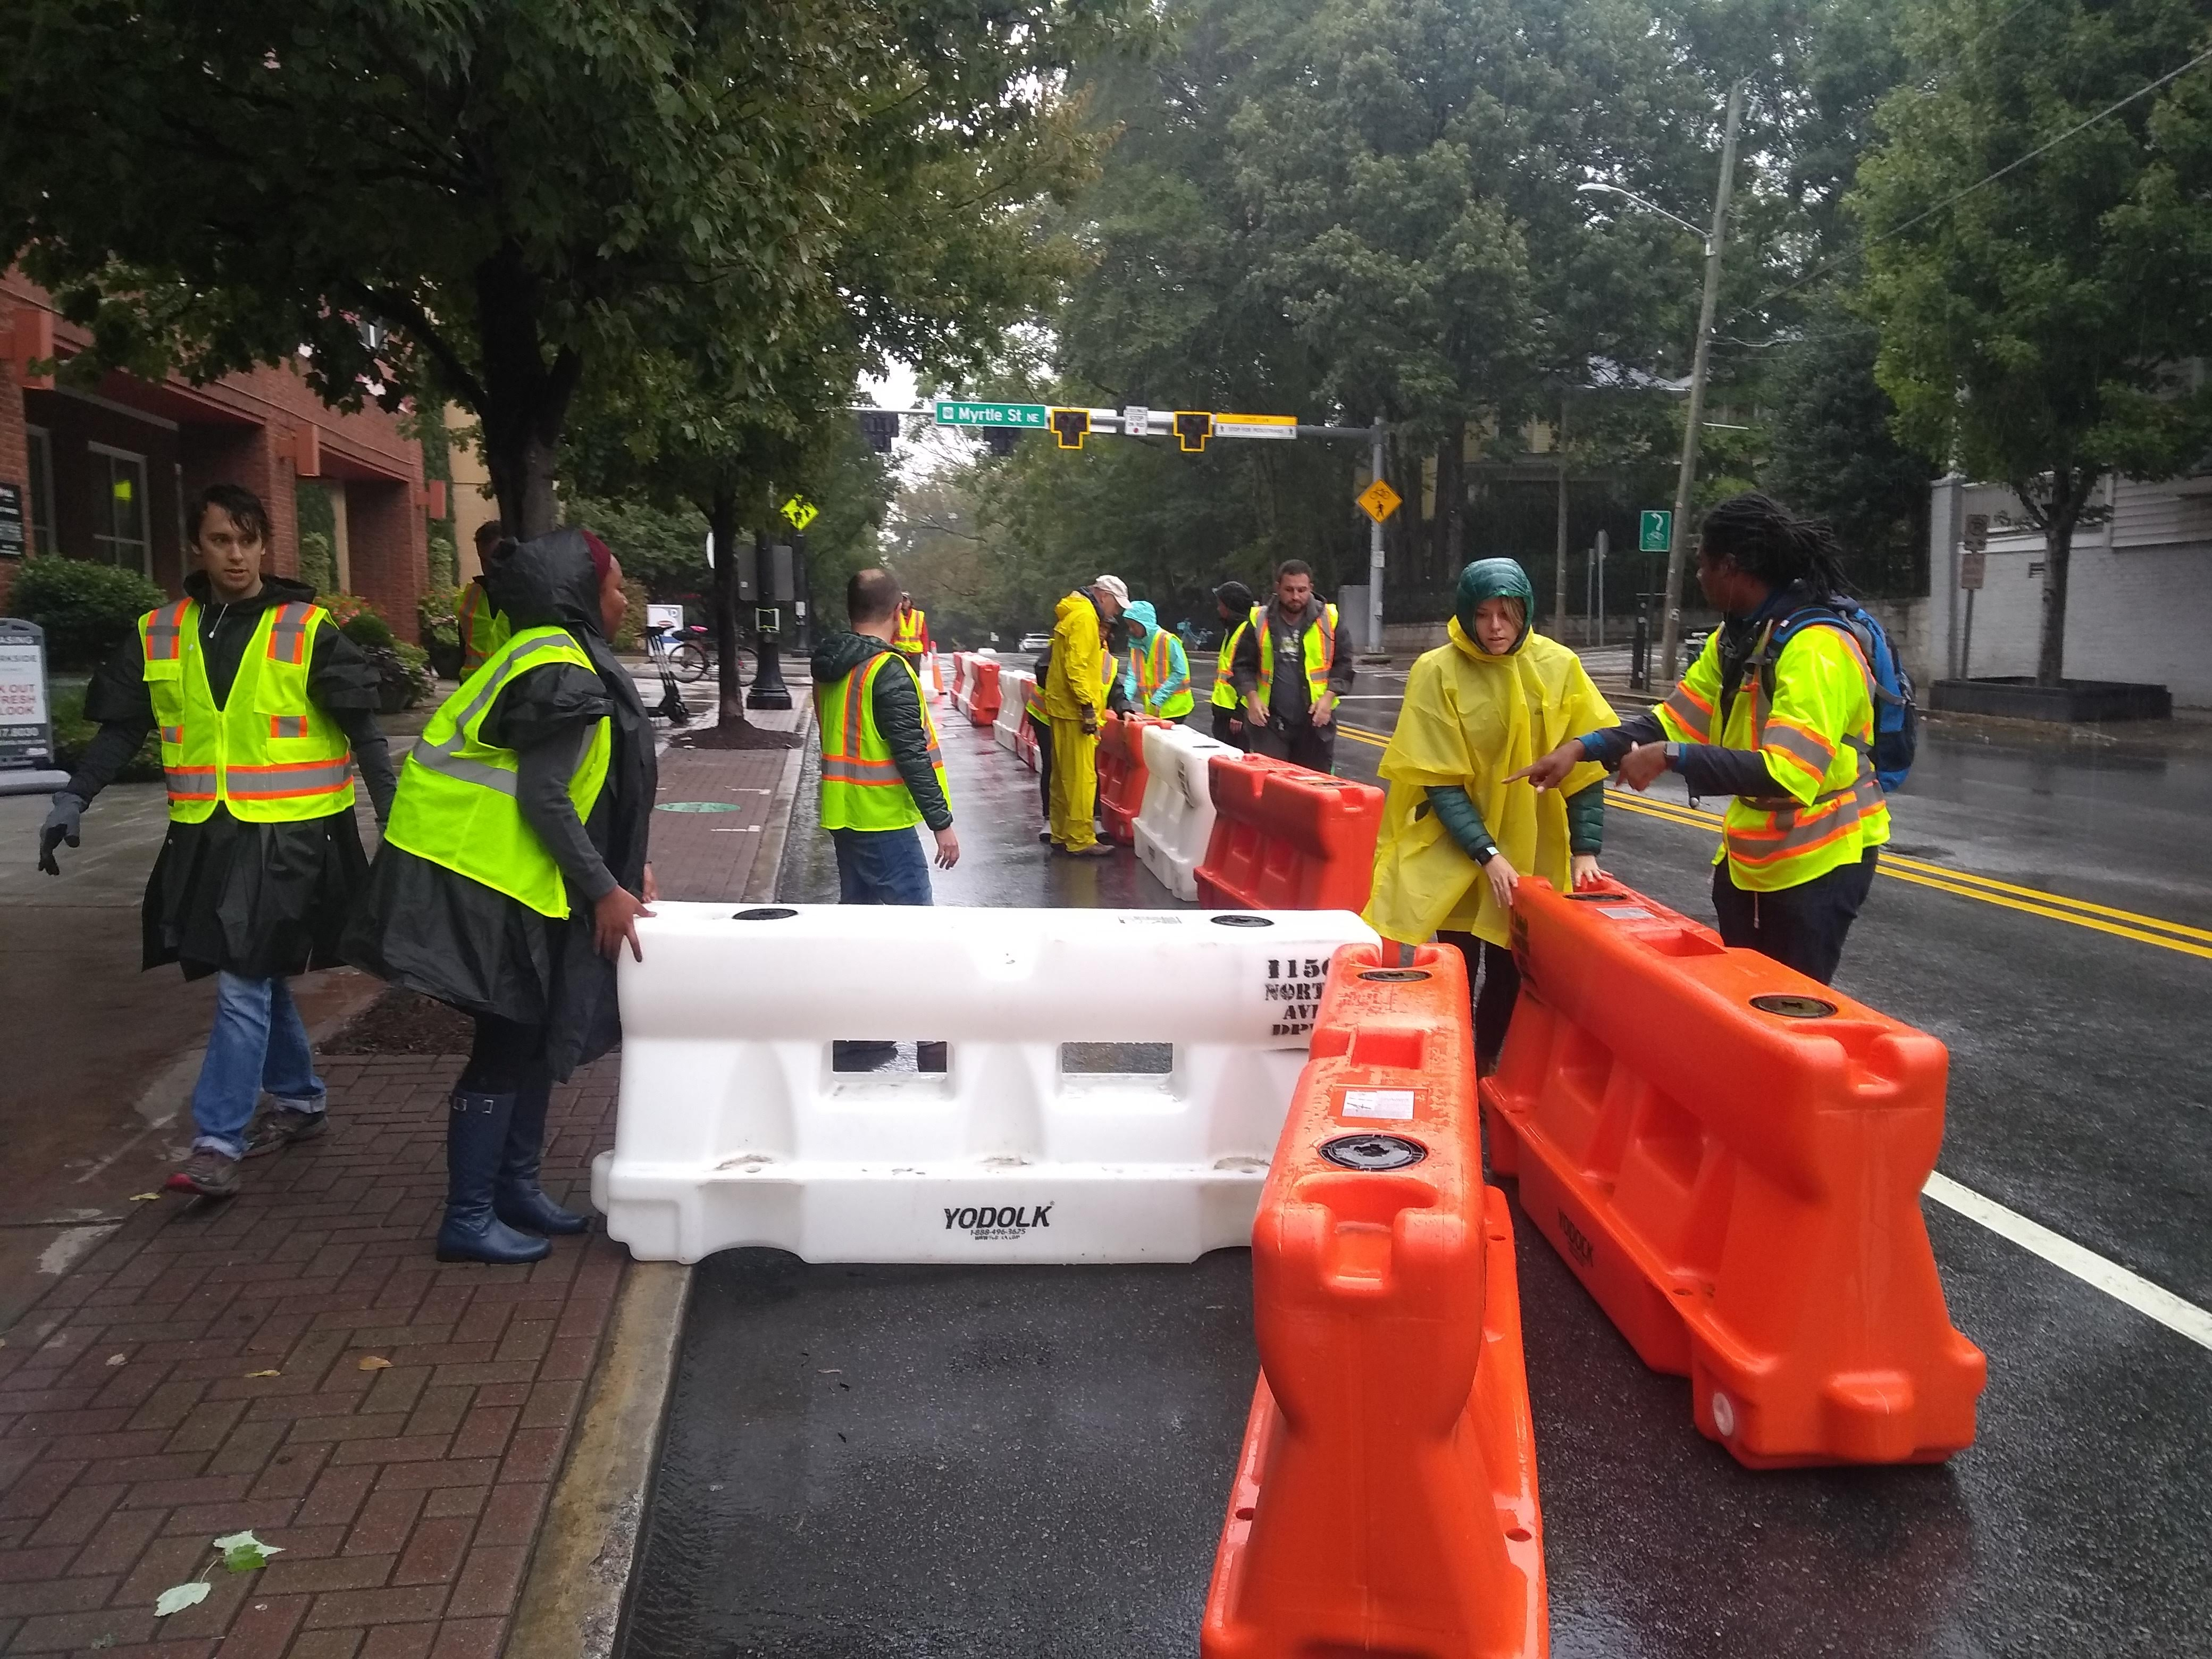 Volunteers move plastic barricades to create a protected bike lane on 10th Street in Midtown Atlanta